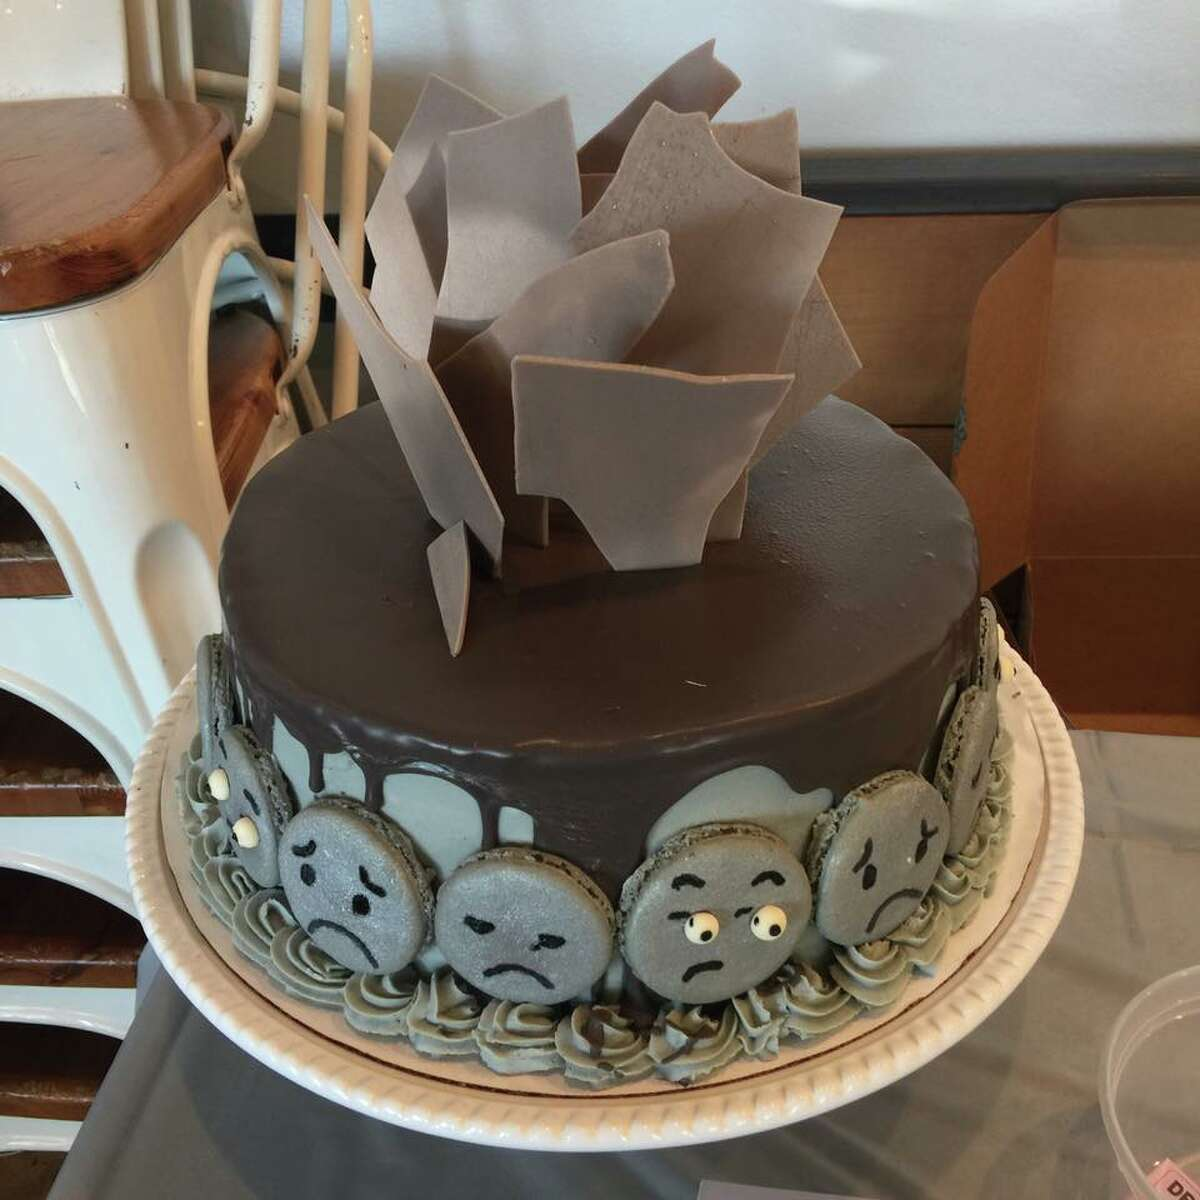 The annual Depressed Cake Shop, a fundraiser to benefit the Montrose Center and the Greater Houston chapter of the National Alliance on Mental Illness, will be held Sunday, Oct. 29 at Underbelly. Shown: Examples of depressed cakes.